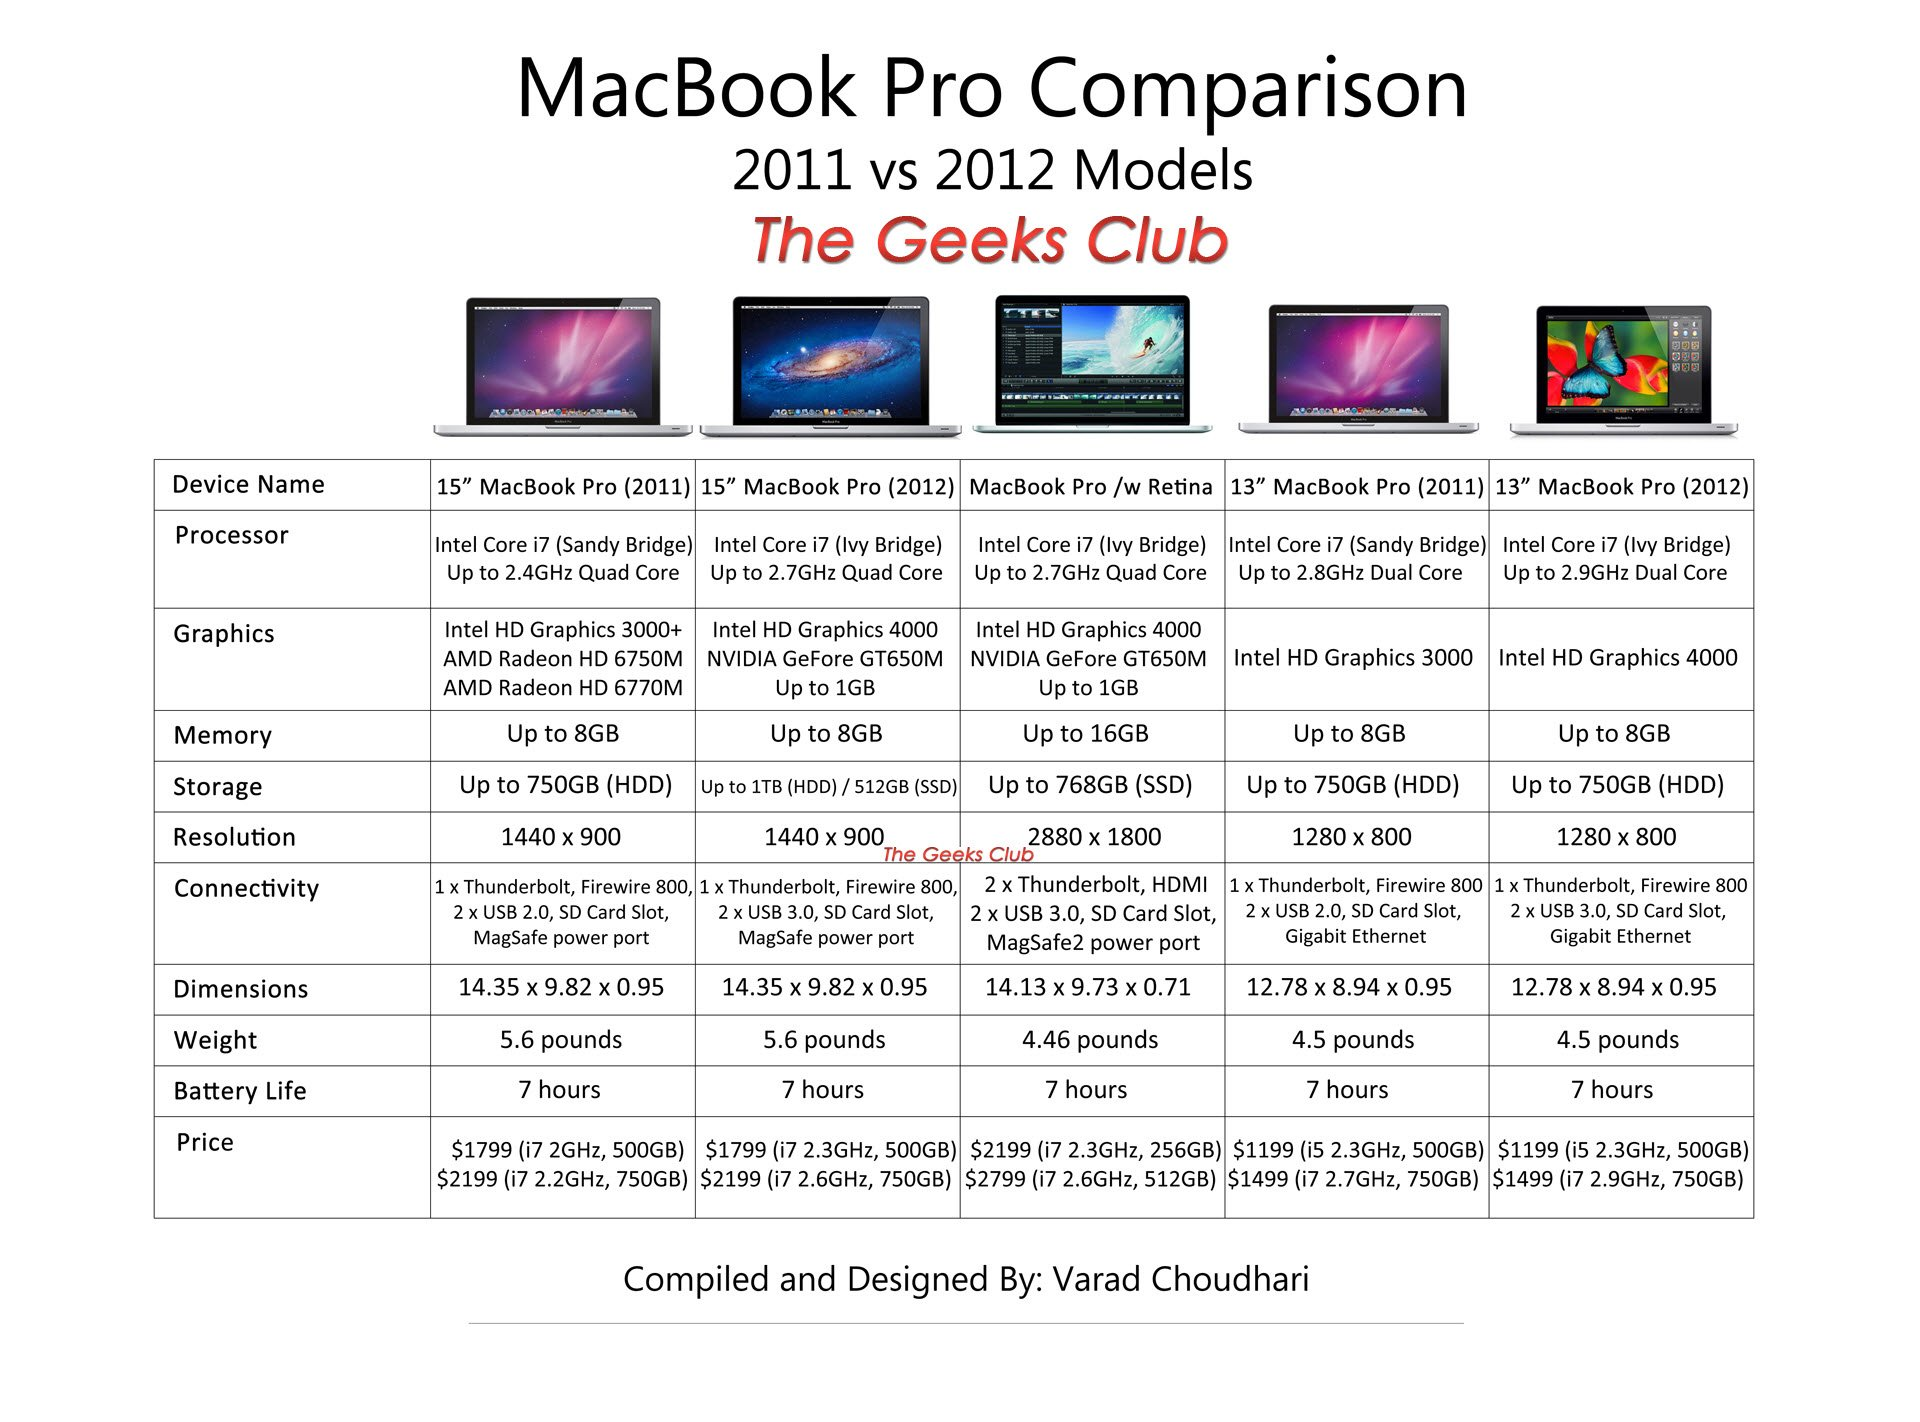 MacBook Pro 2012 Models: Differences and Comparison Chart